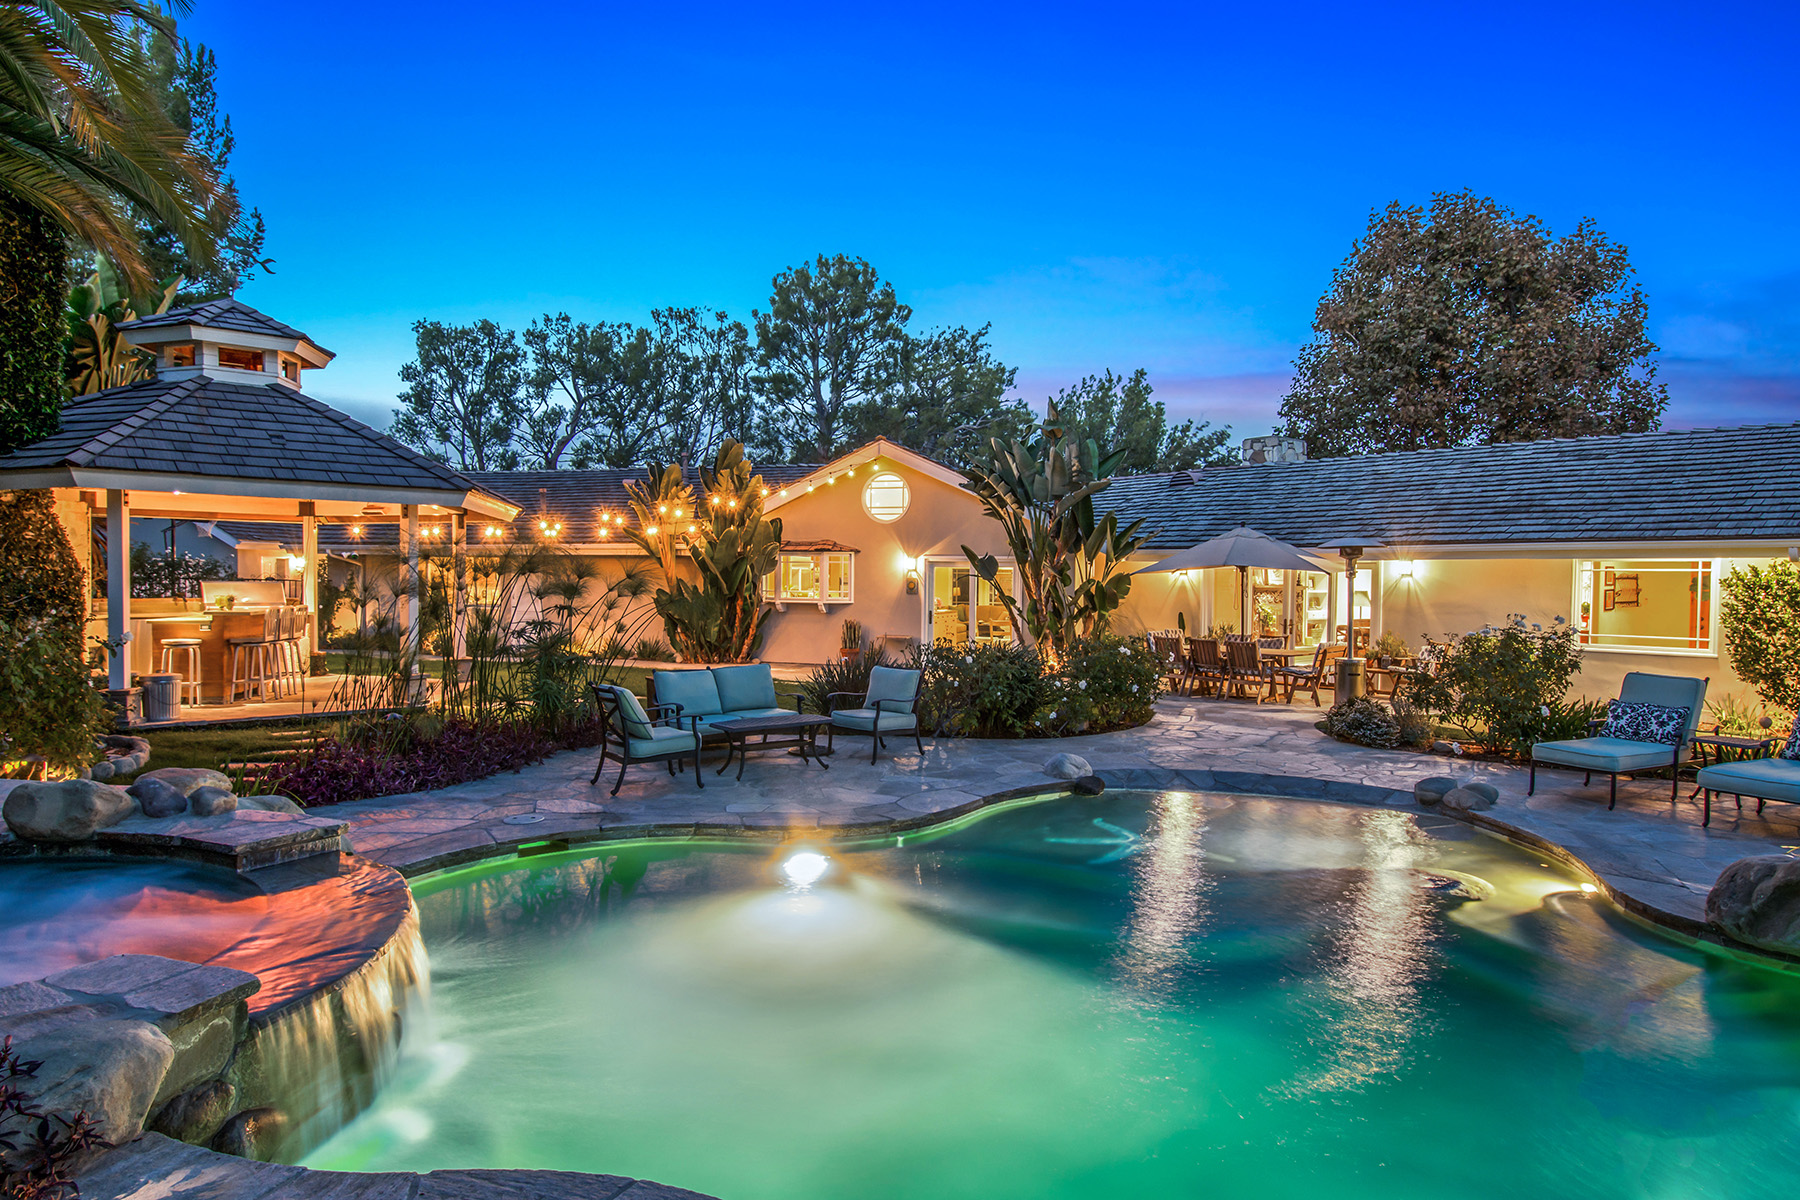 24929 Jim Bridger Road, Hidden Hills, CA 91302 - $2,355,000